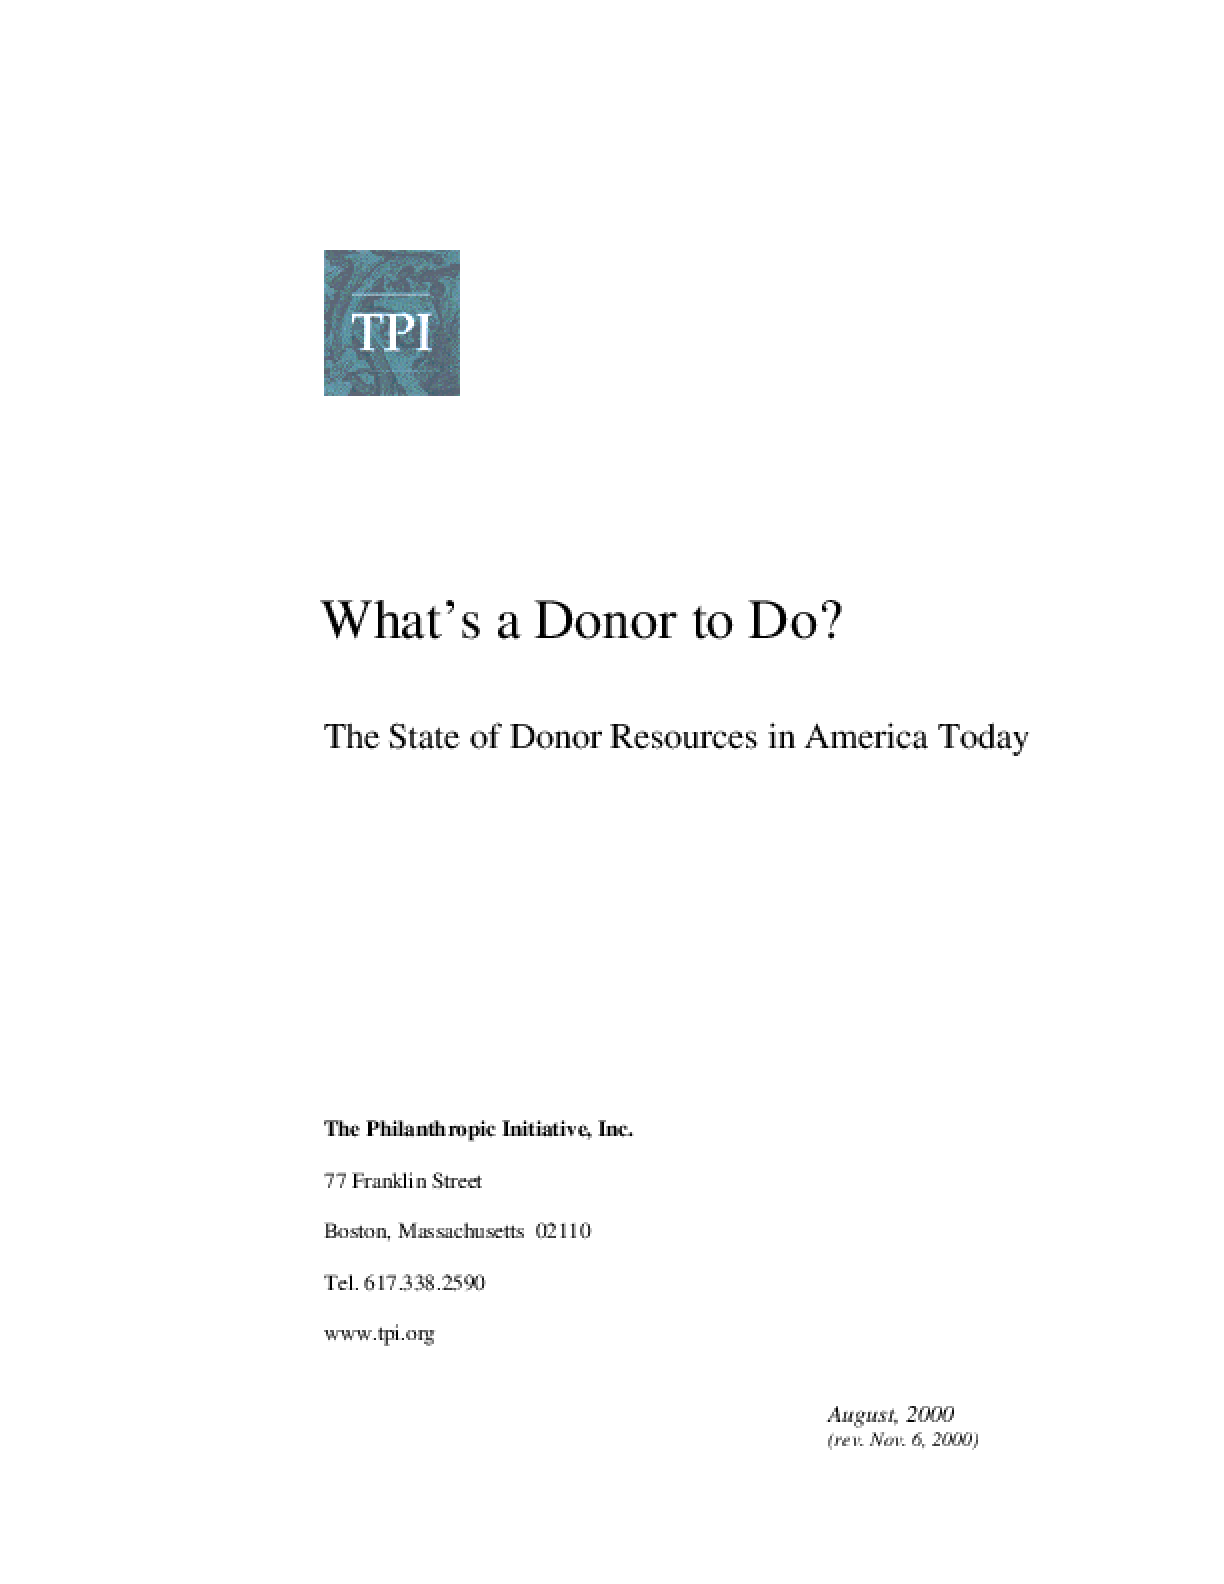 What's a Donor to Do? The State of Donor Resources in America Today